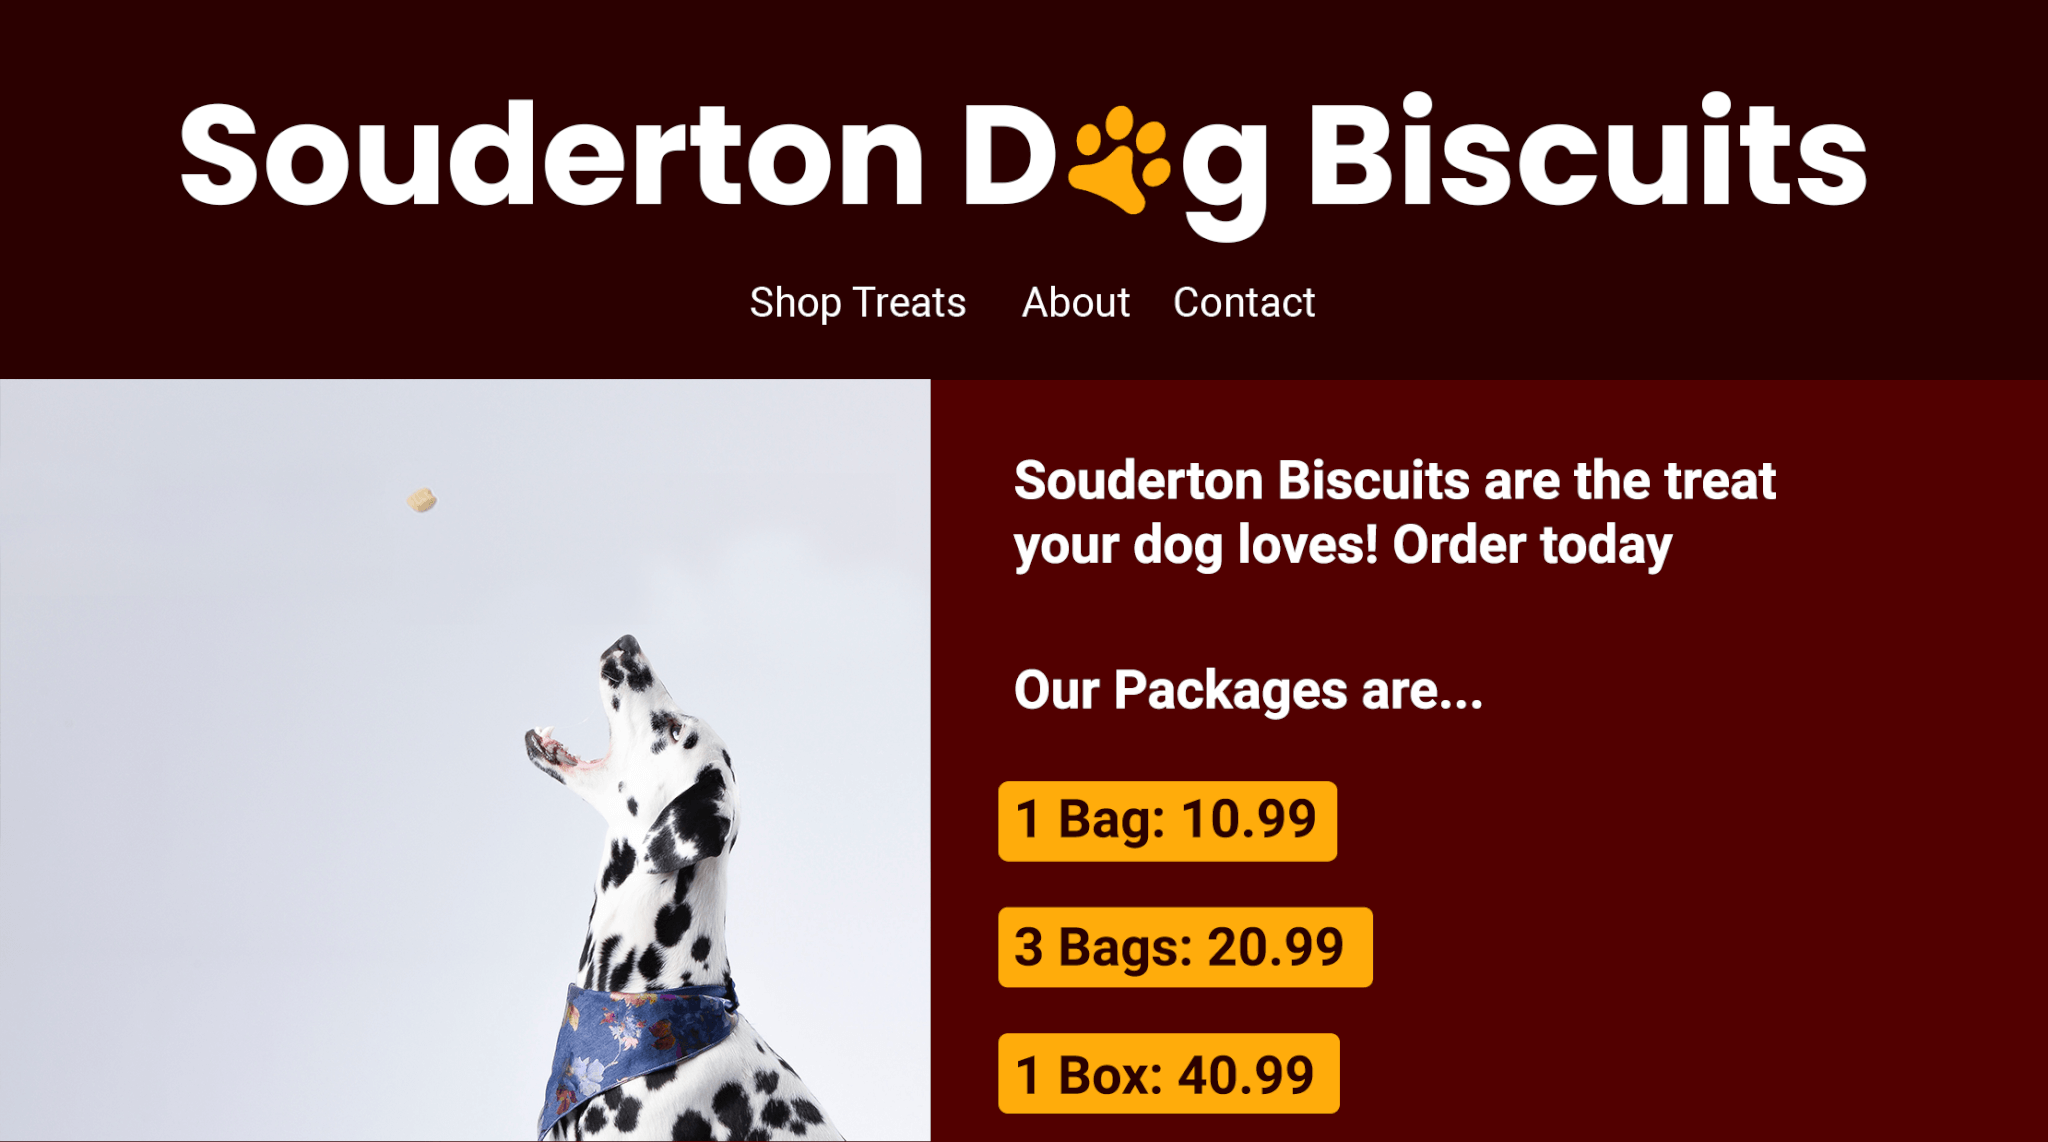 Souderton Dog Biscuits